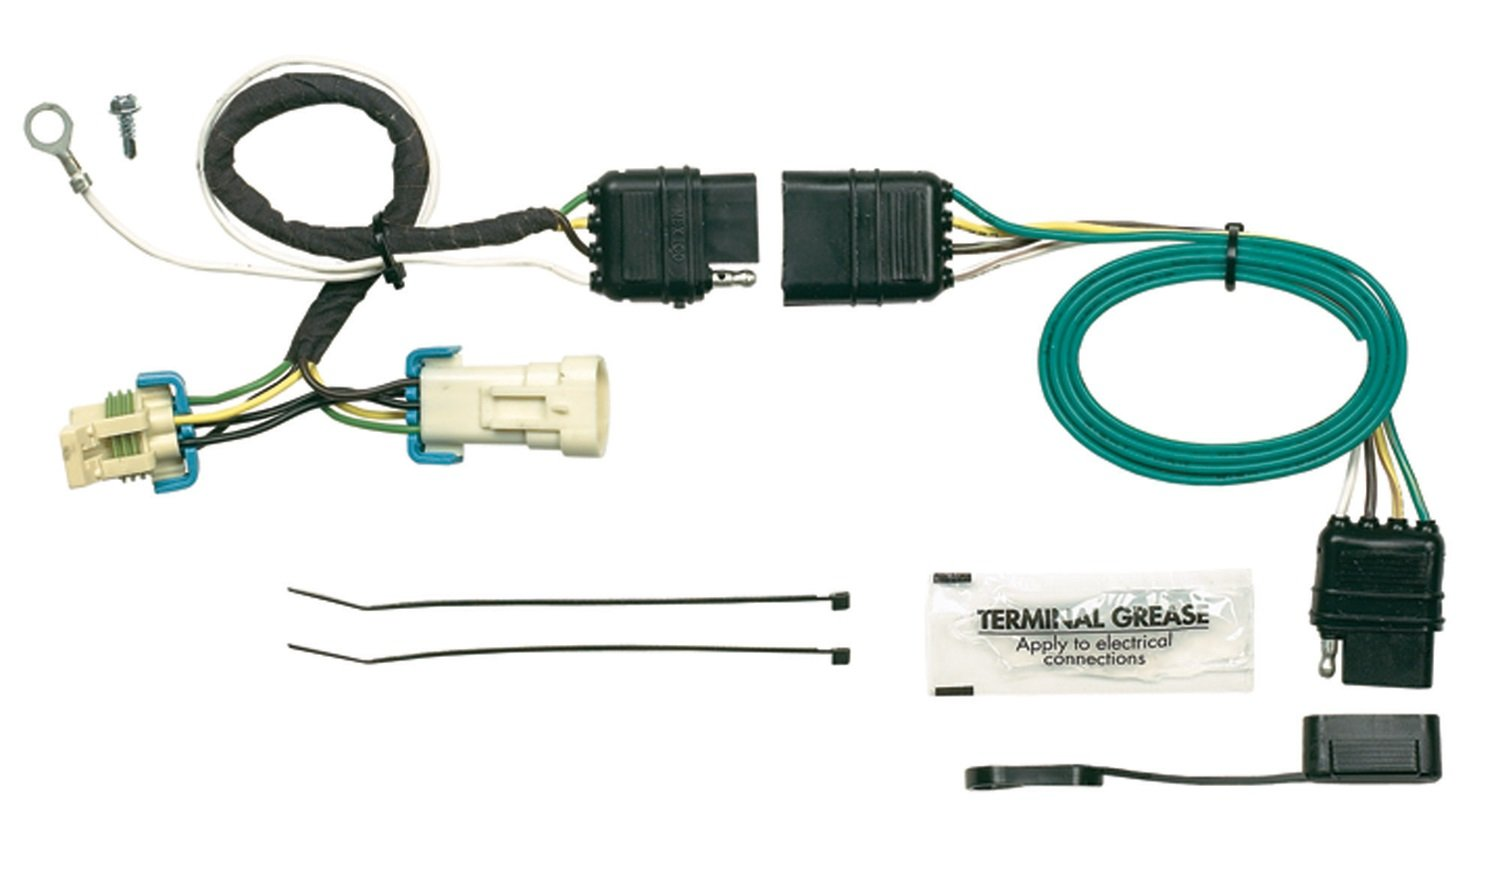 618X6OJbTkL._SL1500_ amazon com hopkins 41135 plug in simple vehicle wiring kit 2001 chevy s10 trailer wiring harness at readyjetset.co